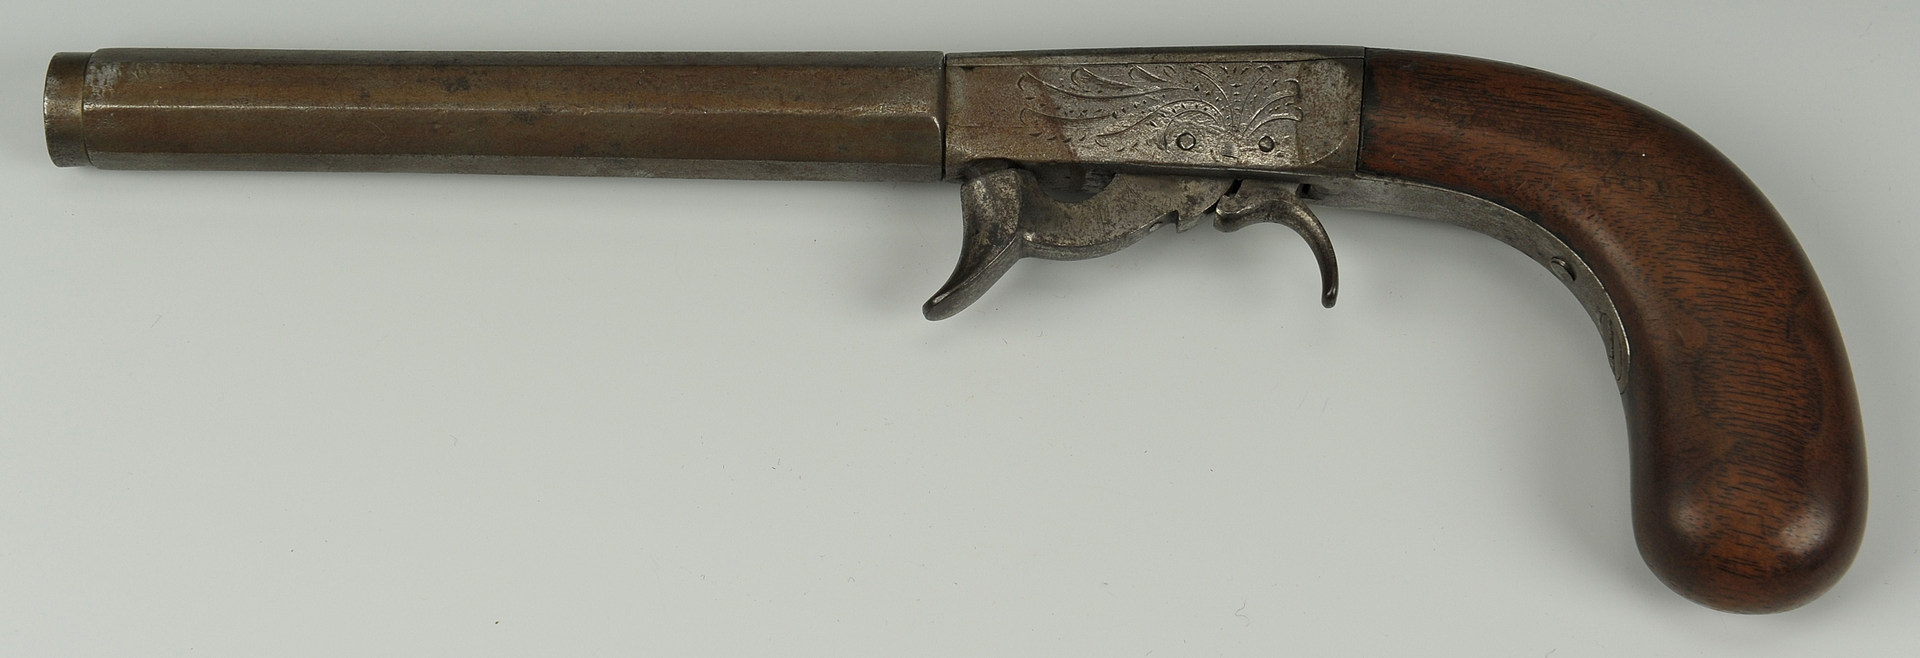 Lot 519: Tennessee Underhammer Percussion Pistol